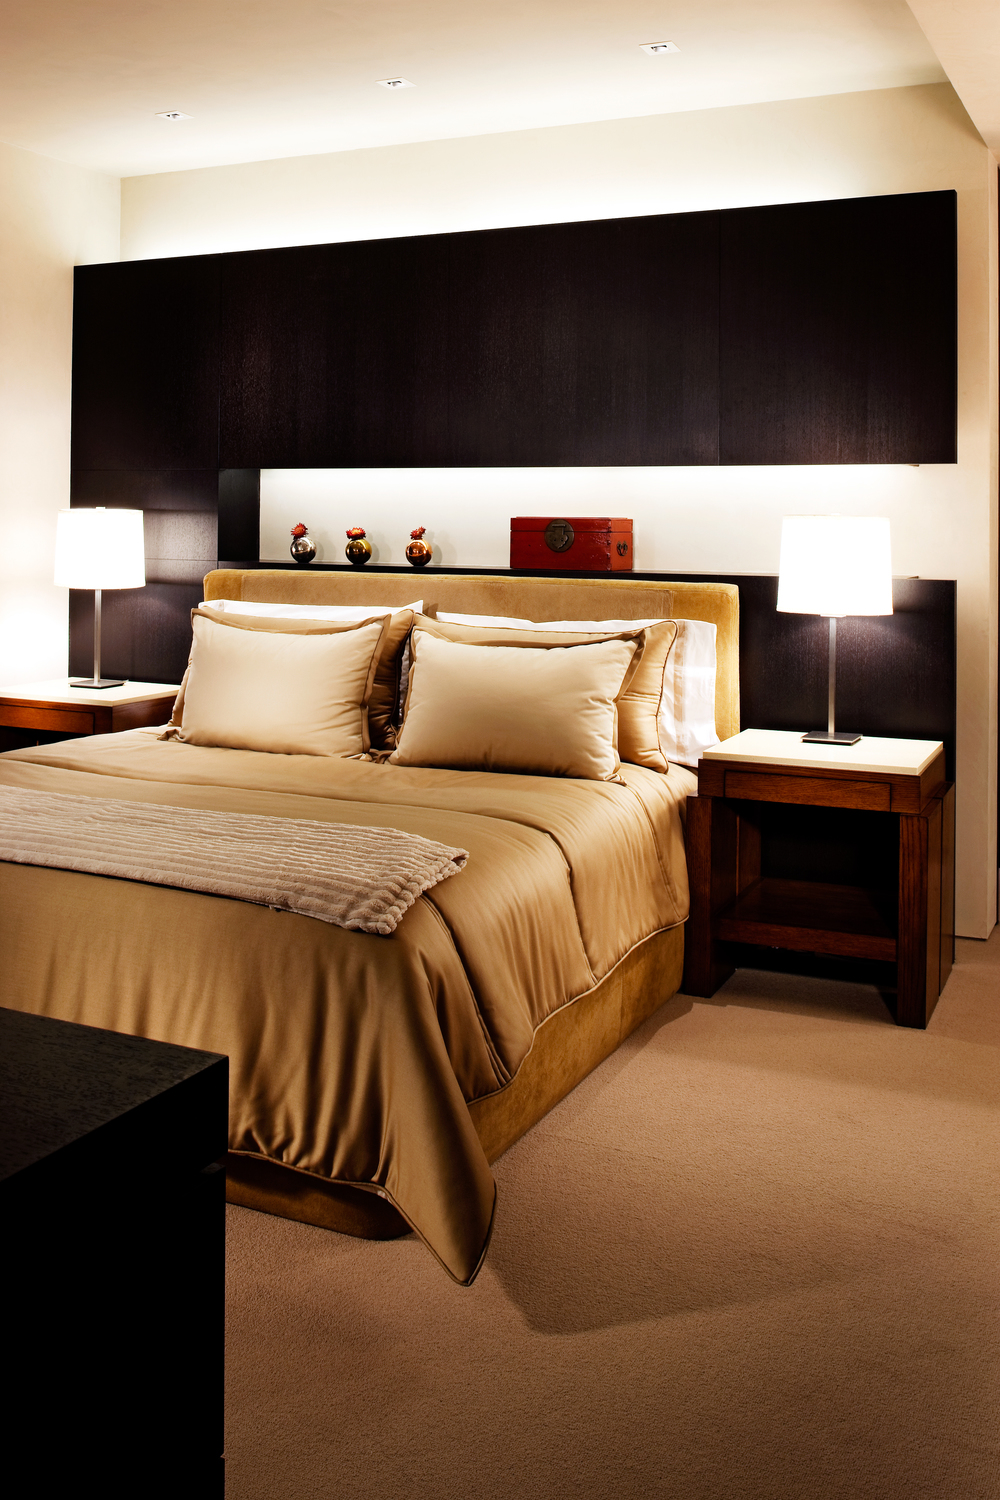 b&gdesign-bedroom3.jpg